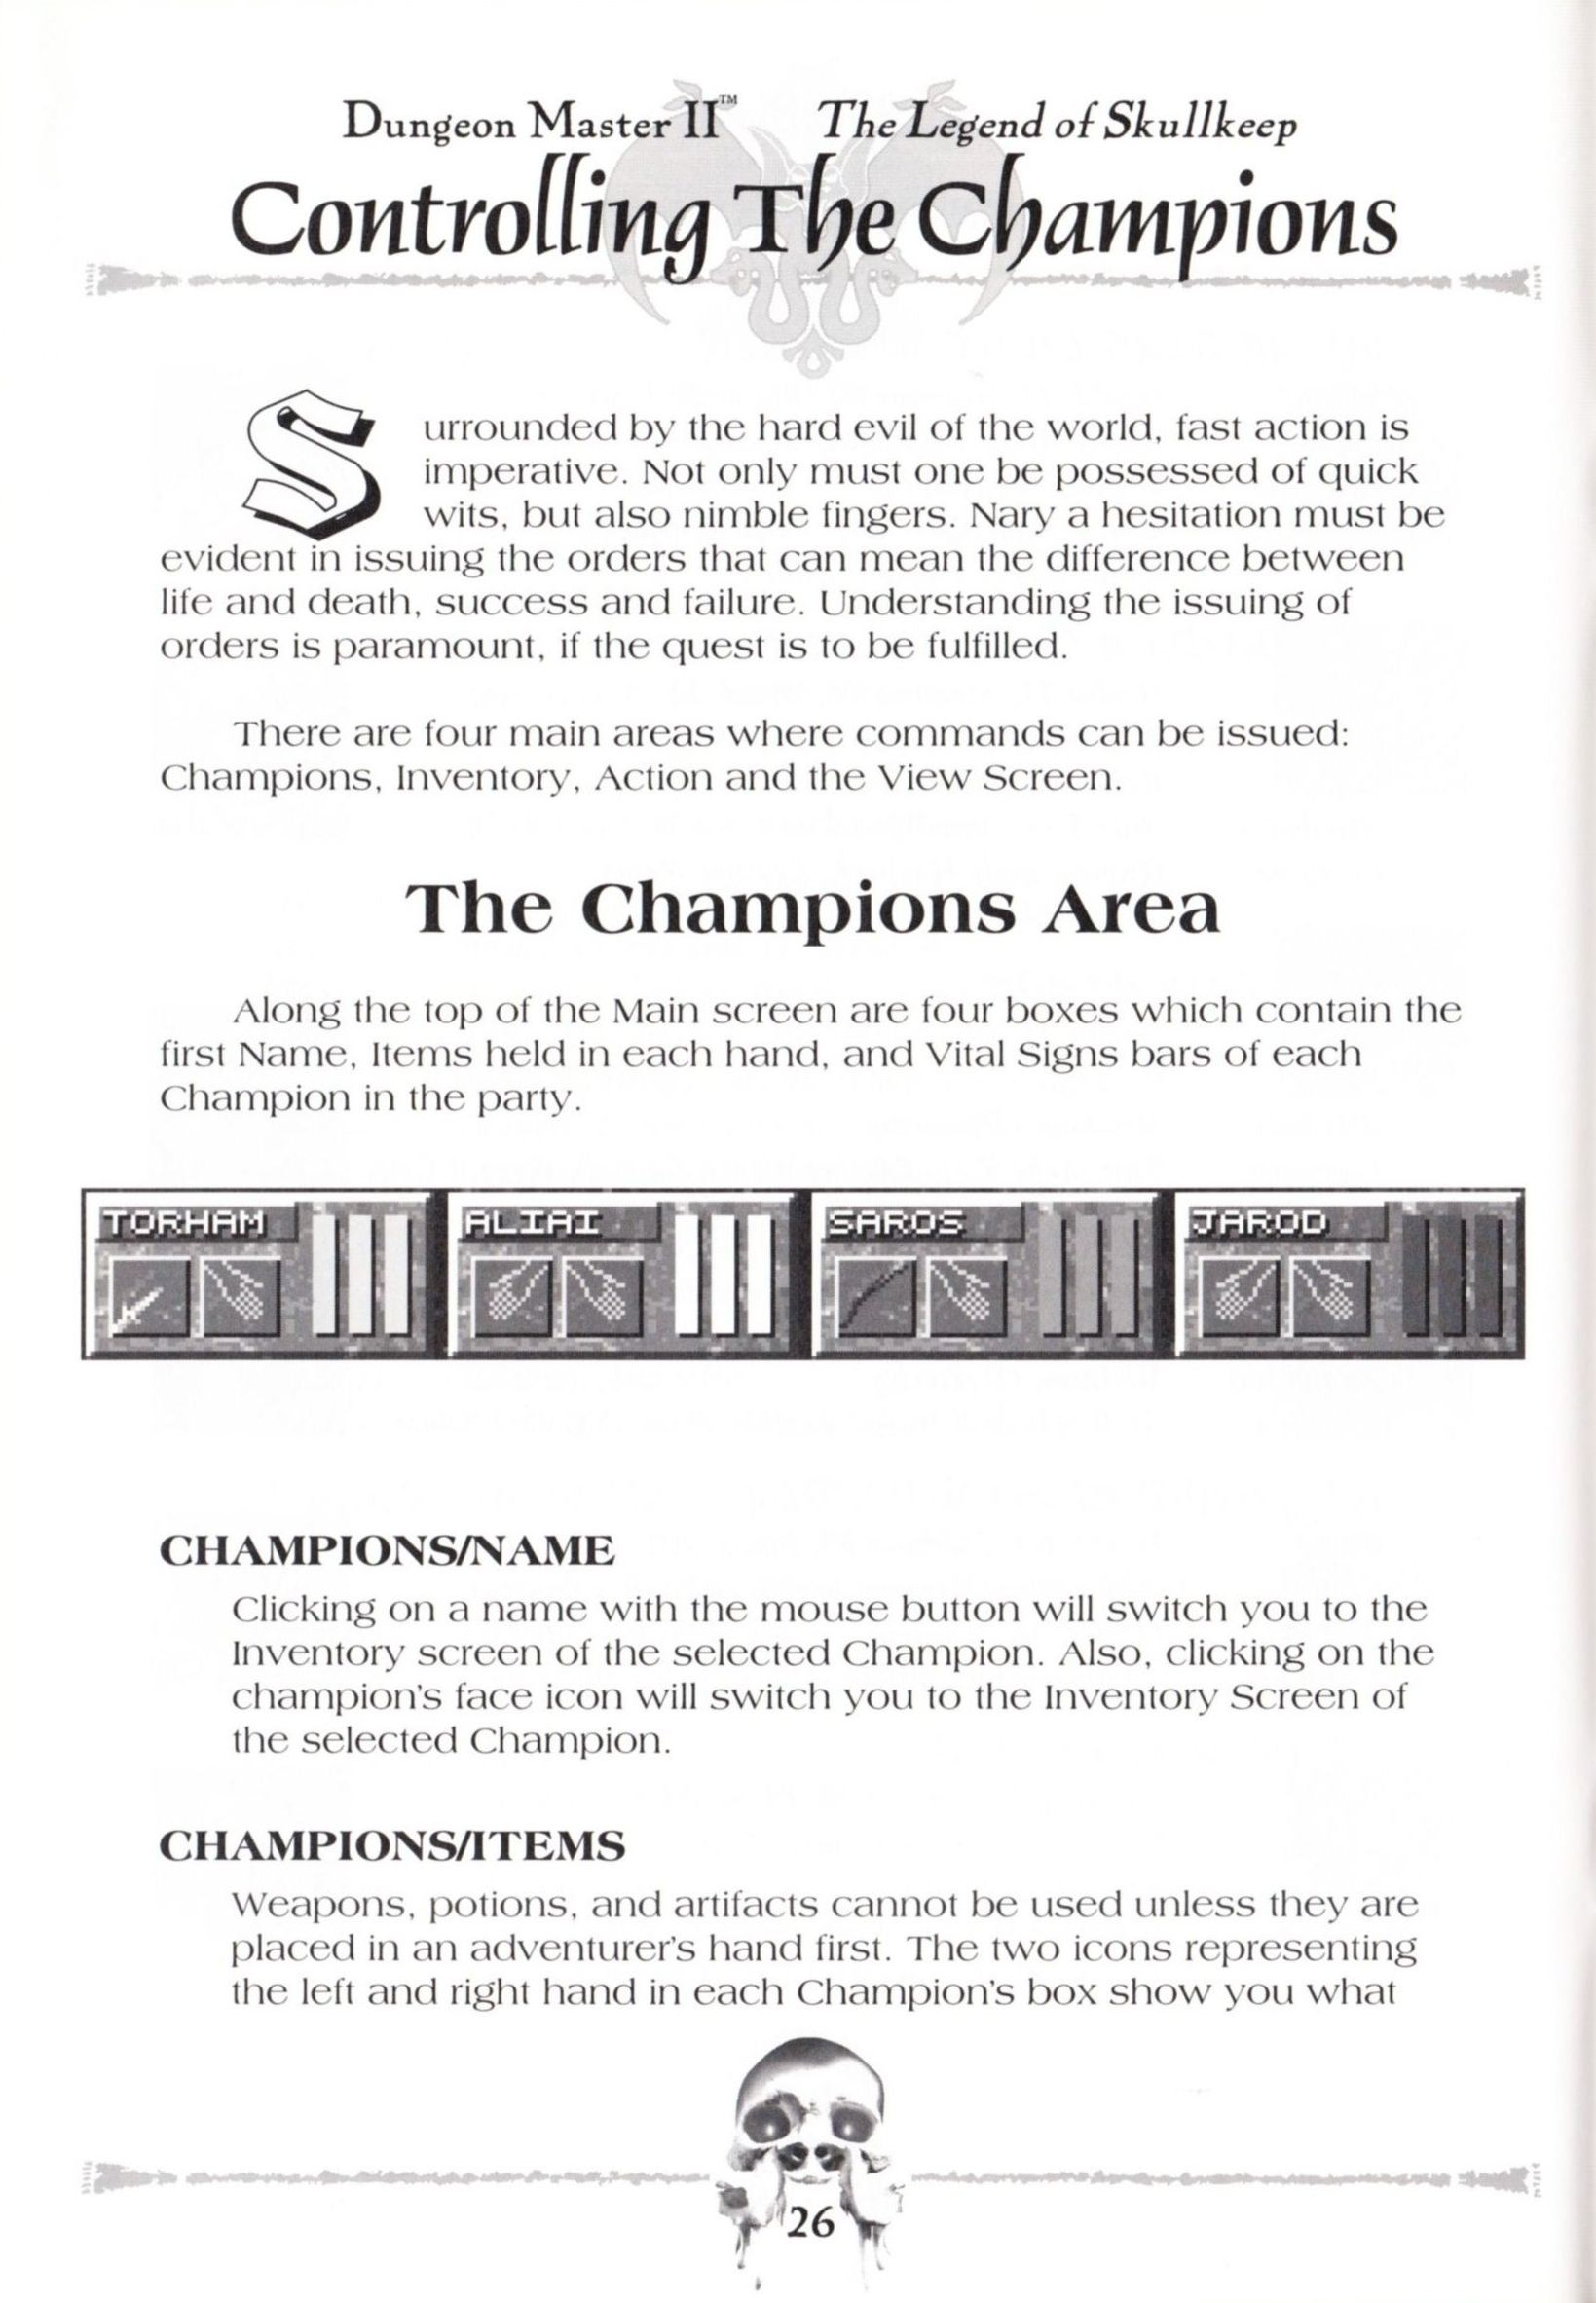 Game - Dungeon Master II - US - Macintosh - Manual - Page 028 - Scan